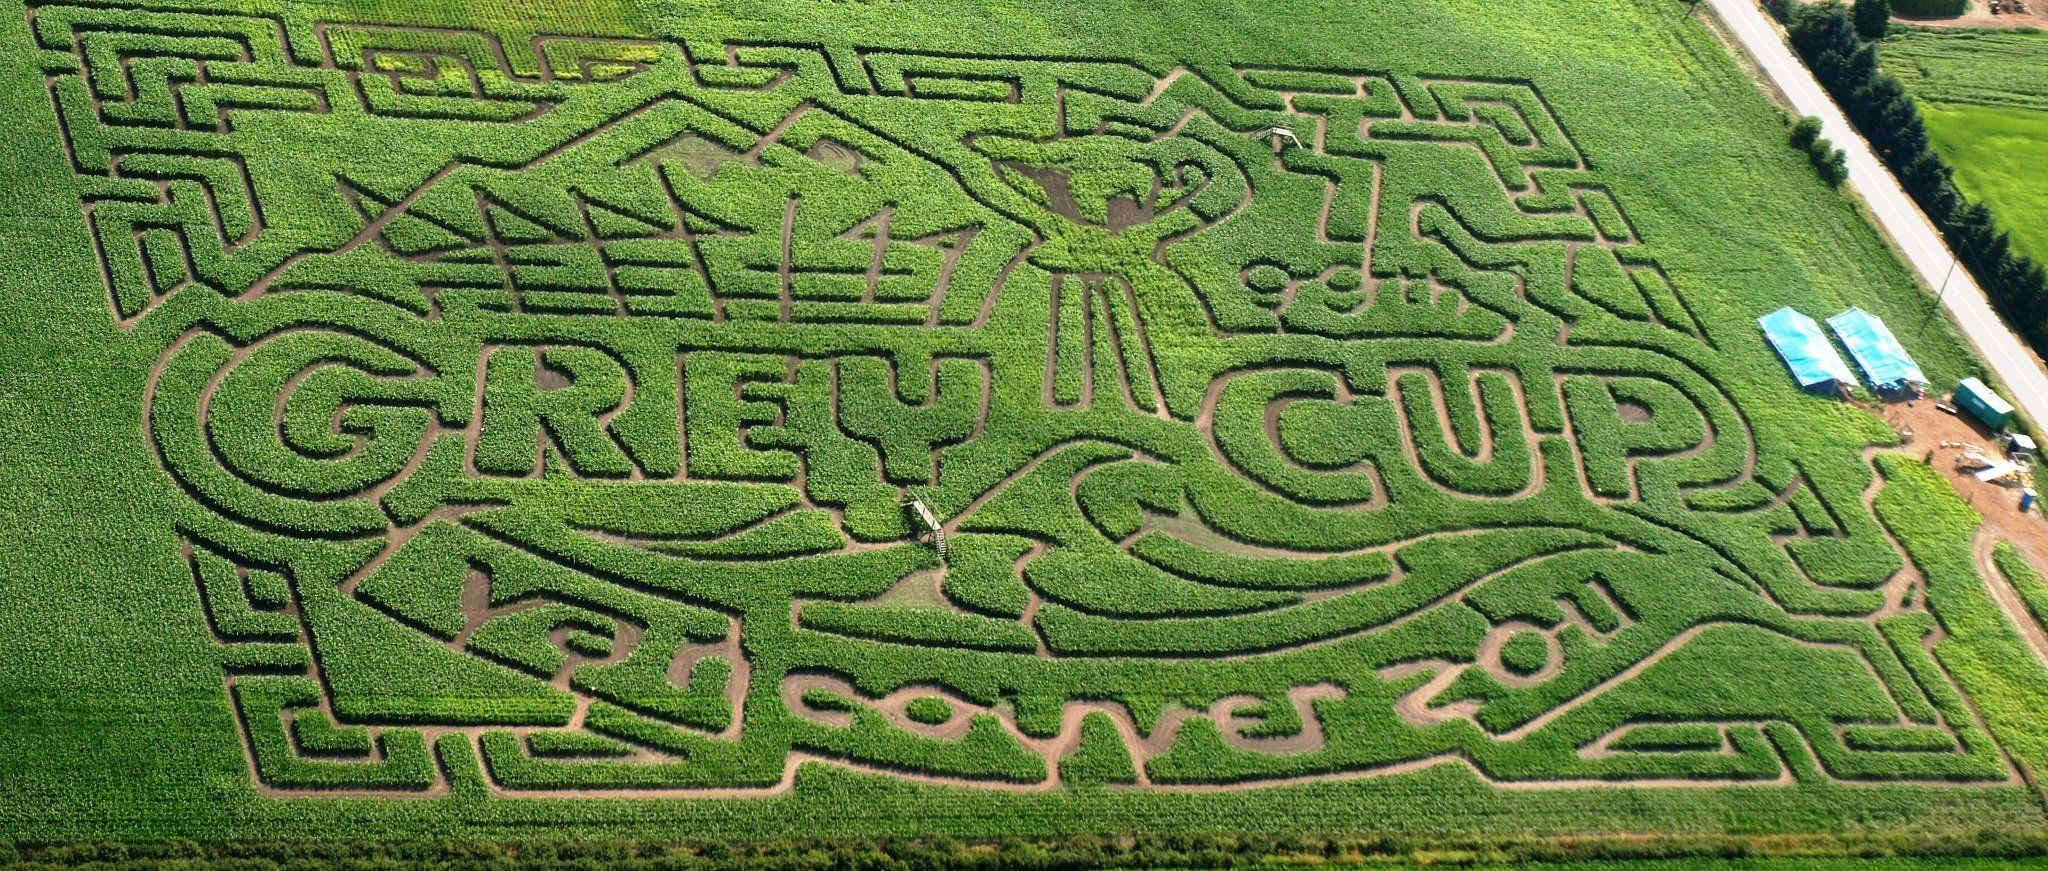 Be Amazed by the Bose Family Corn Maze in #SurreyBC >> http://45in45.tourismsurrey.com/be-amazed-by-the-bose-family-corn-maze/